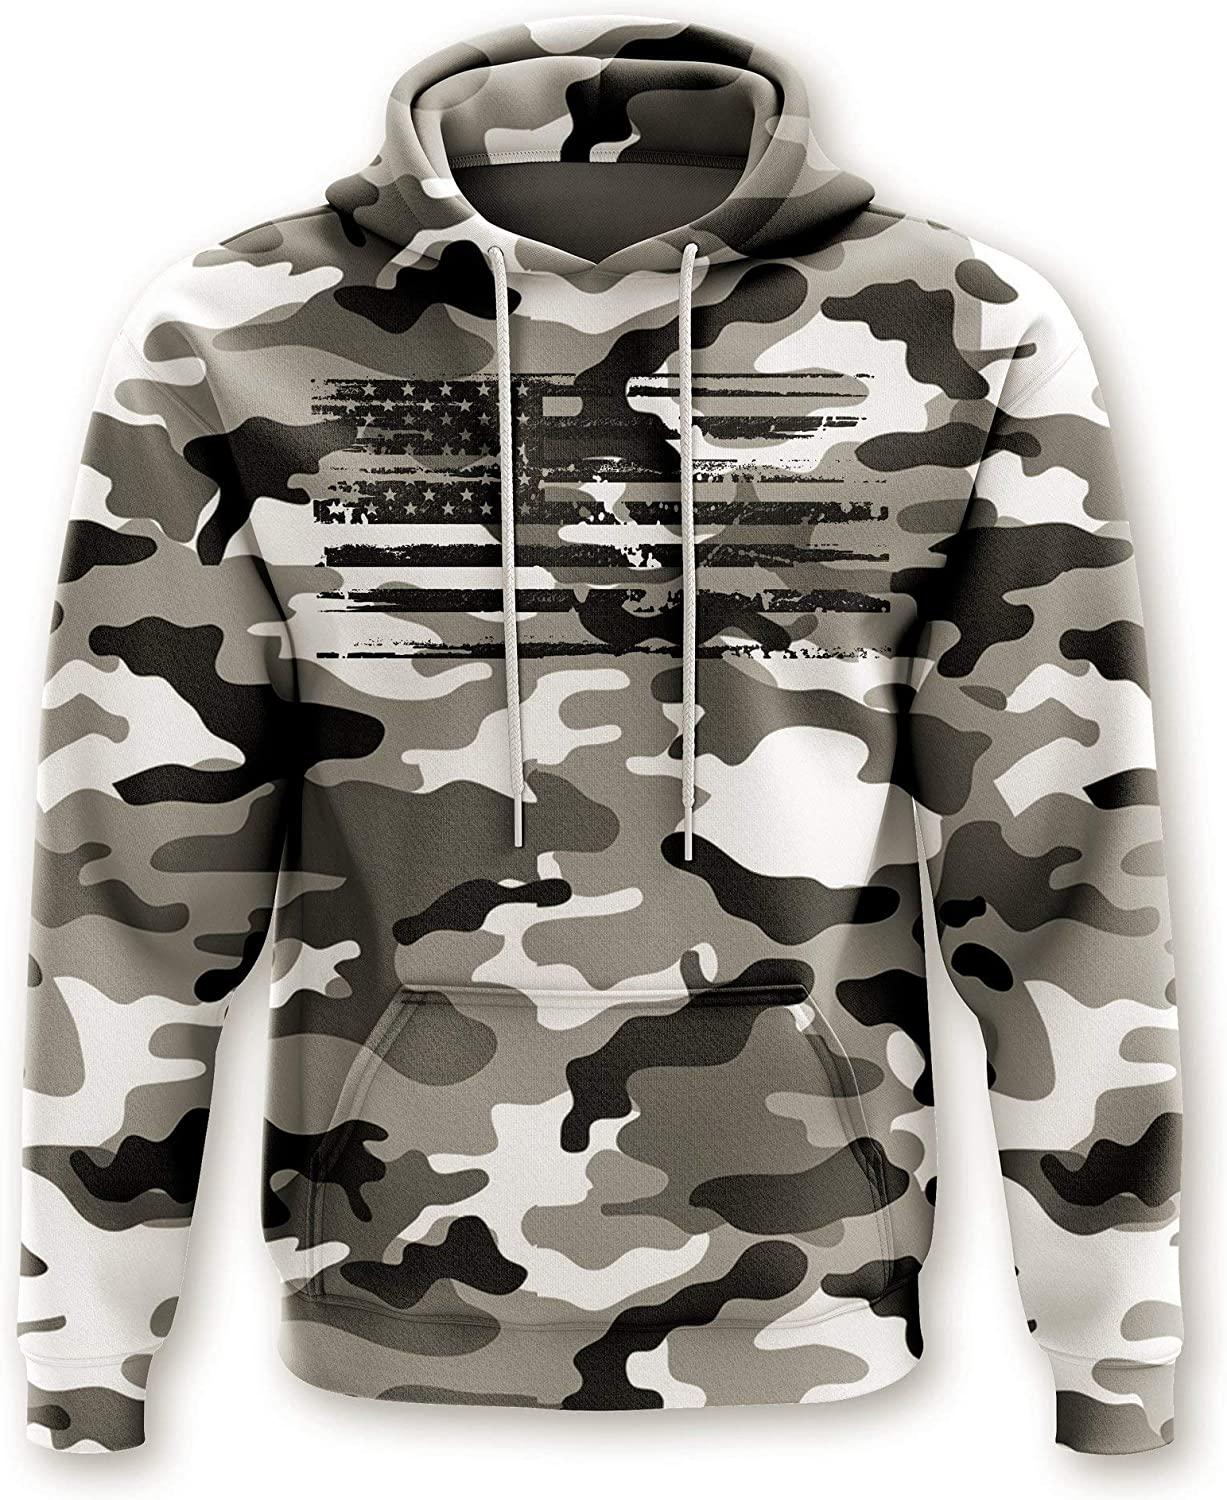 Tactical Pro Supply Army American Camo Flag Hoodie - Cotton Polyester Materials Machine Wash Cold for Men Women Outdoor